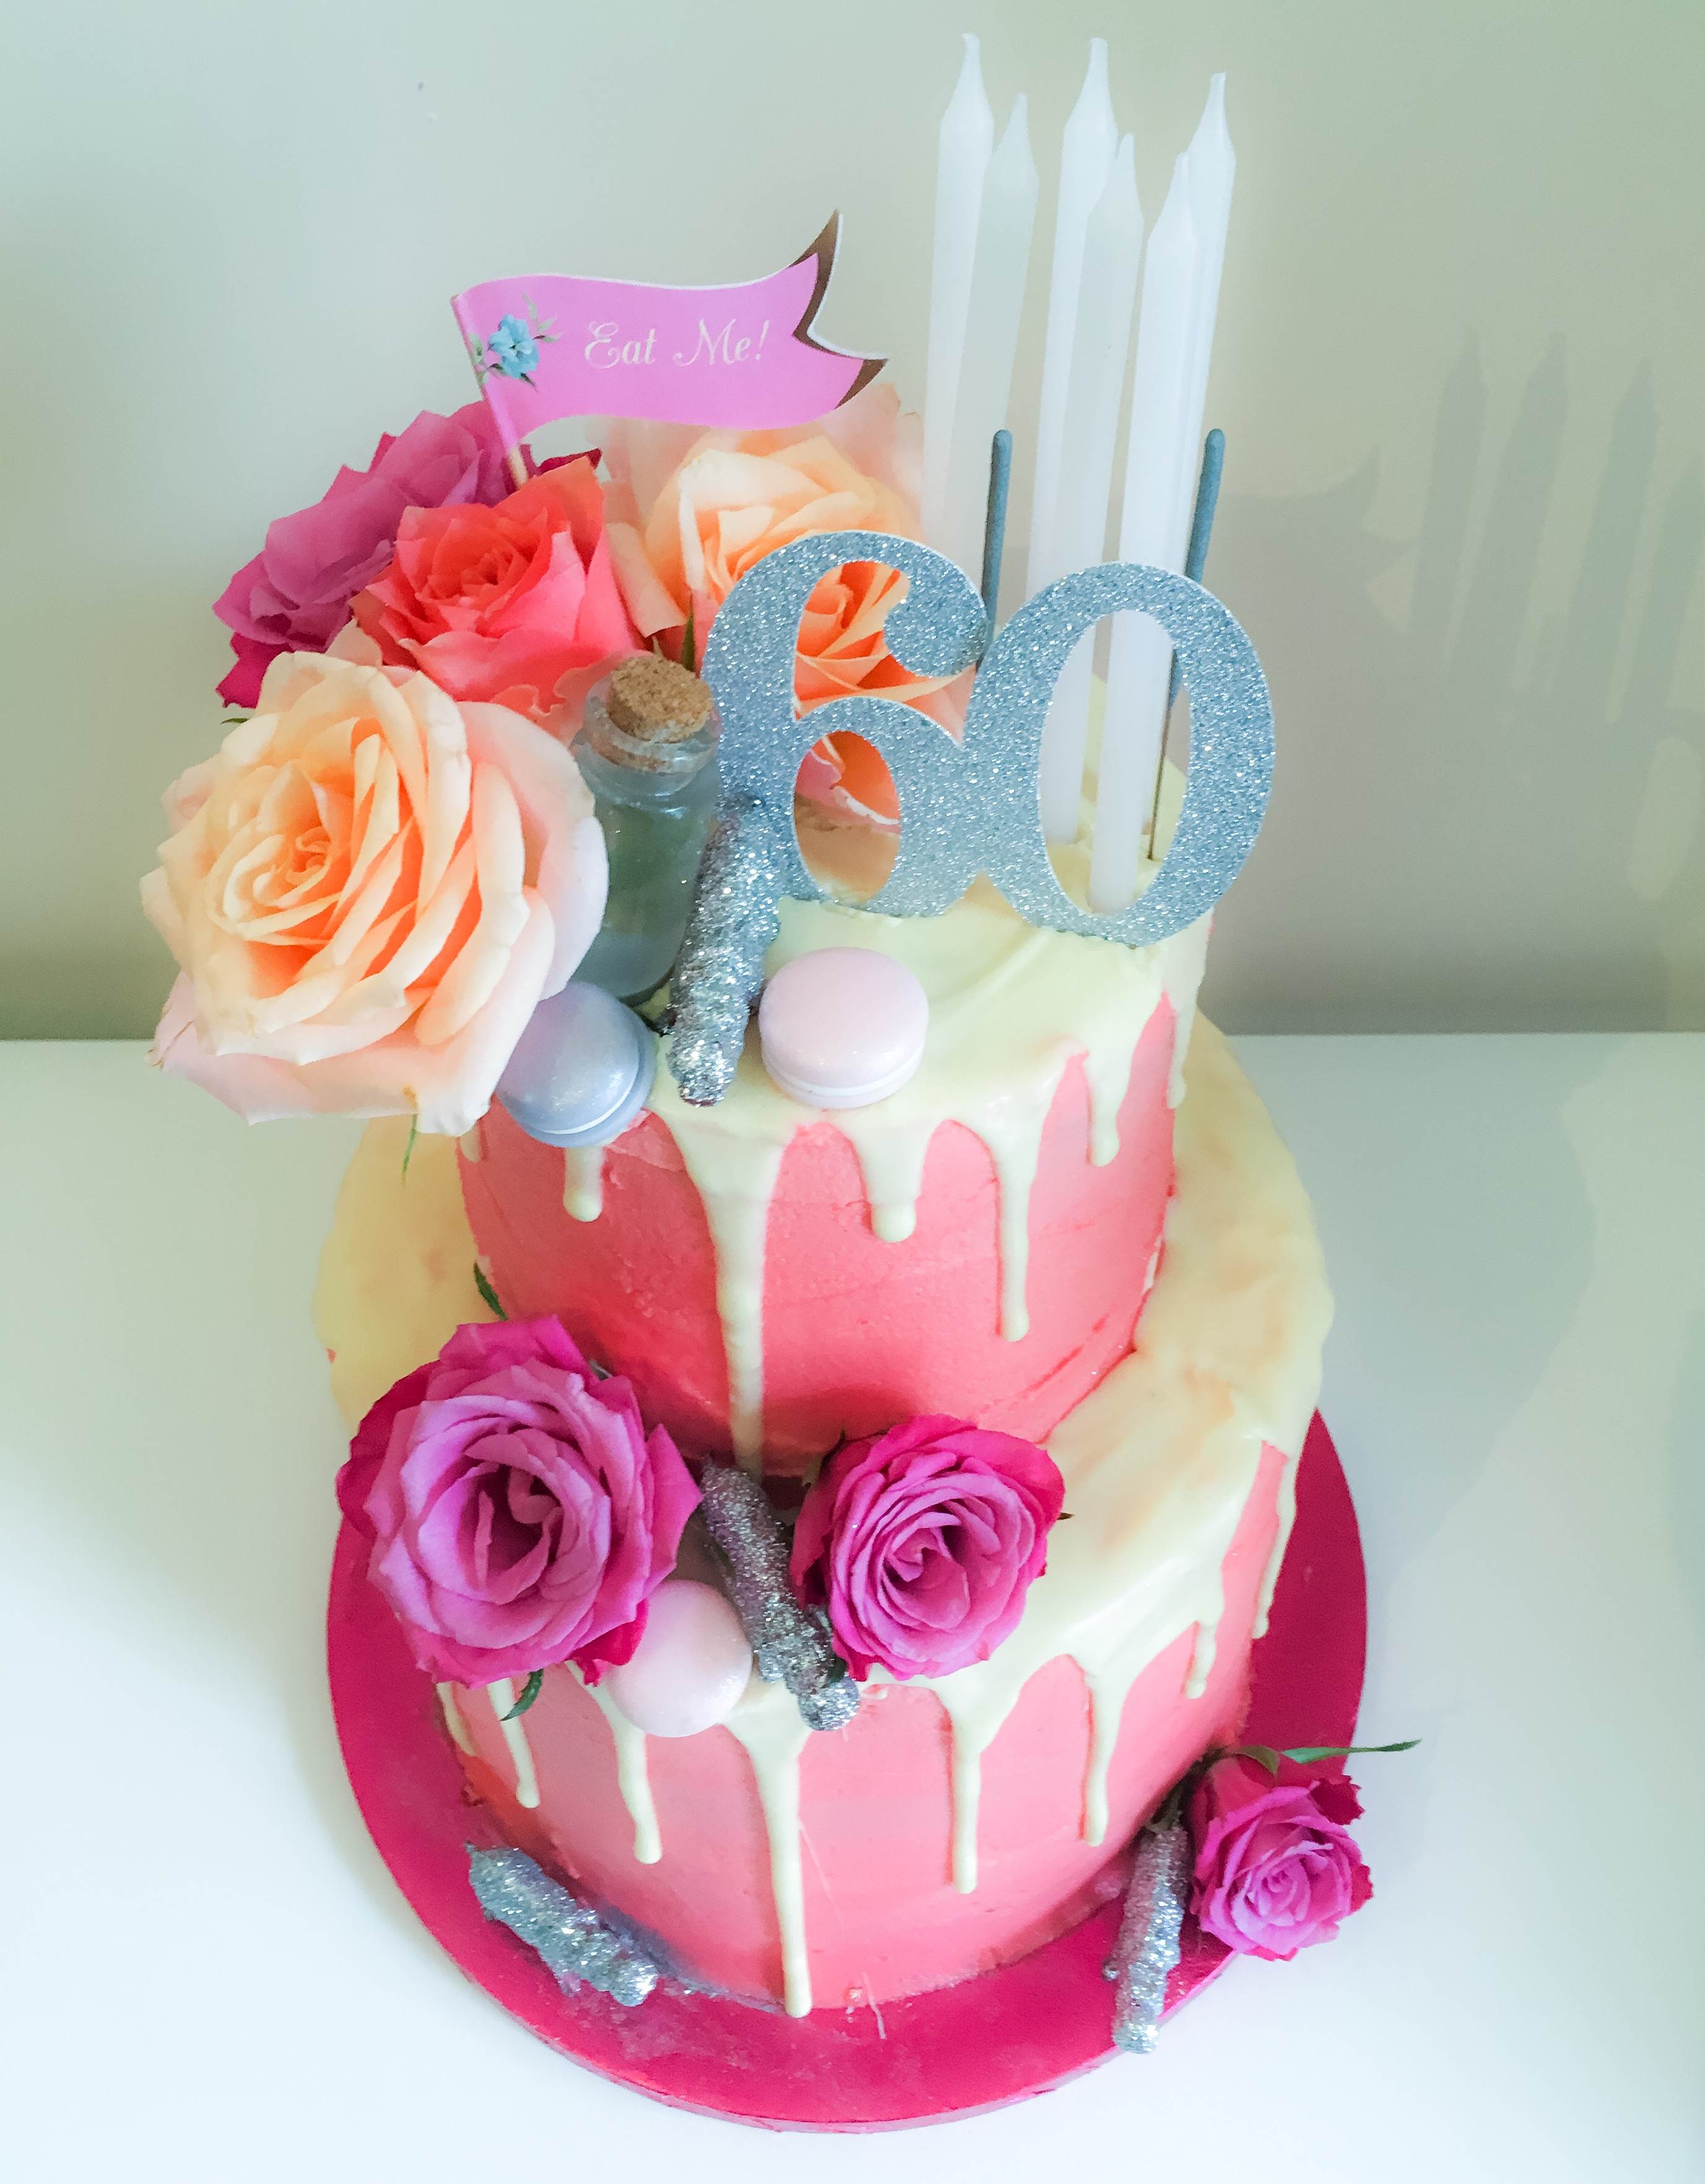 Birthday Cake Ideas For Adults Adult Birthday Cakes Wonderland Cakes Manchester